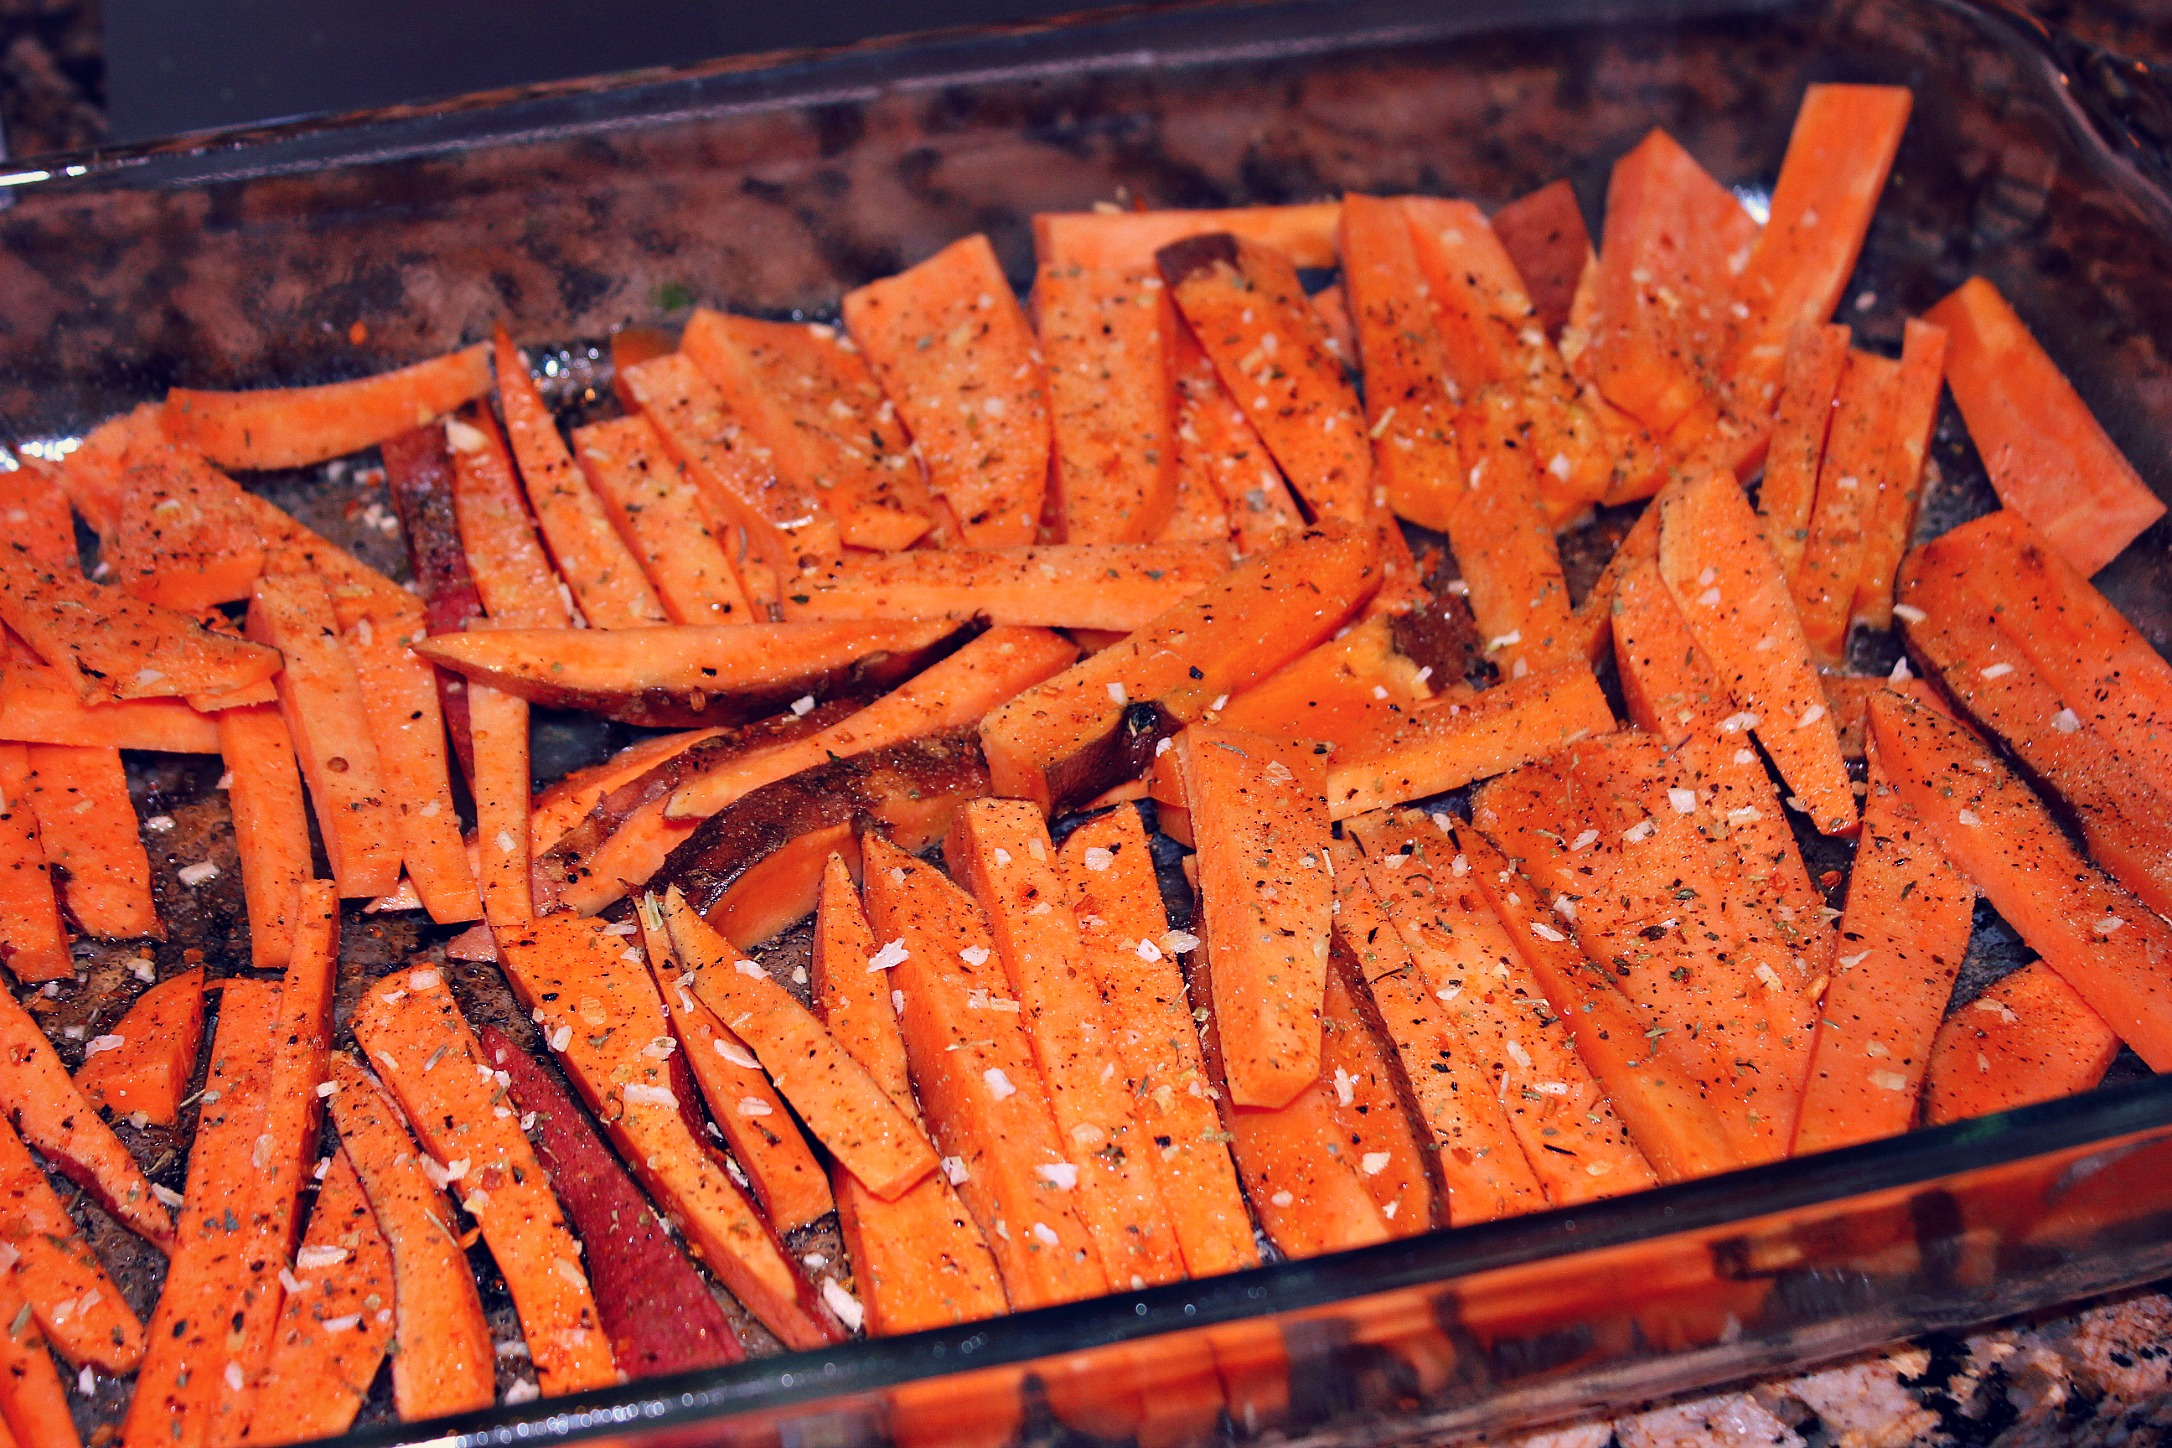 I Boiled The Sweet Potatoes Until Slightly Soft And Then Cut Them Into Fries I Laid Them In A Greased Baking Dish And Seasoned Them With Rosemary